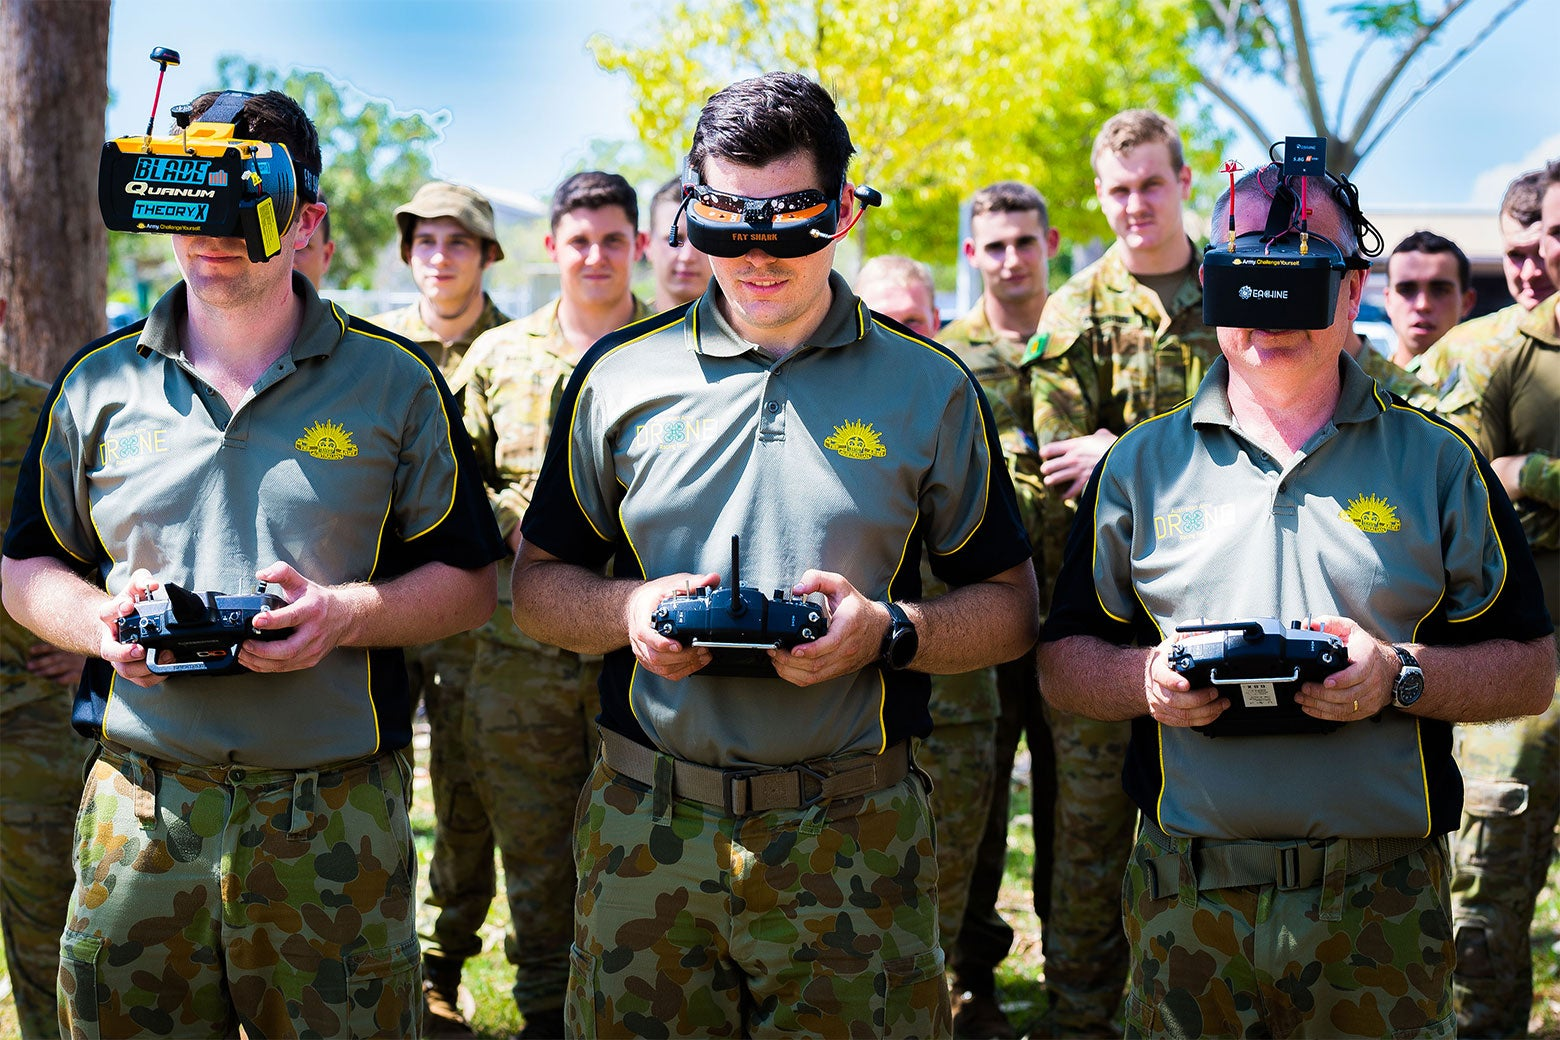 Members of the Australian Army Drone Racing Association